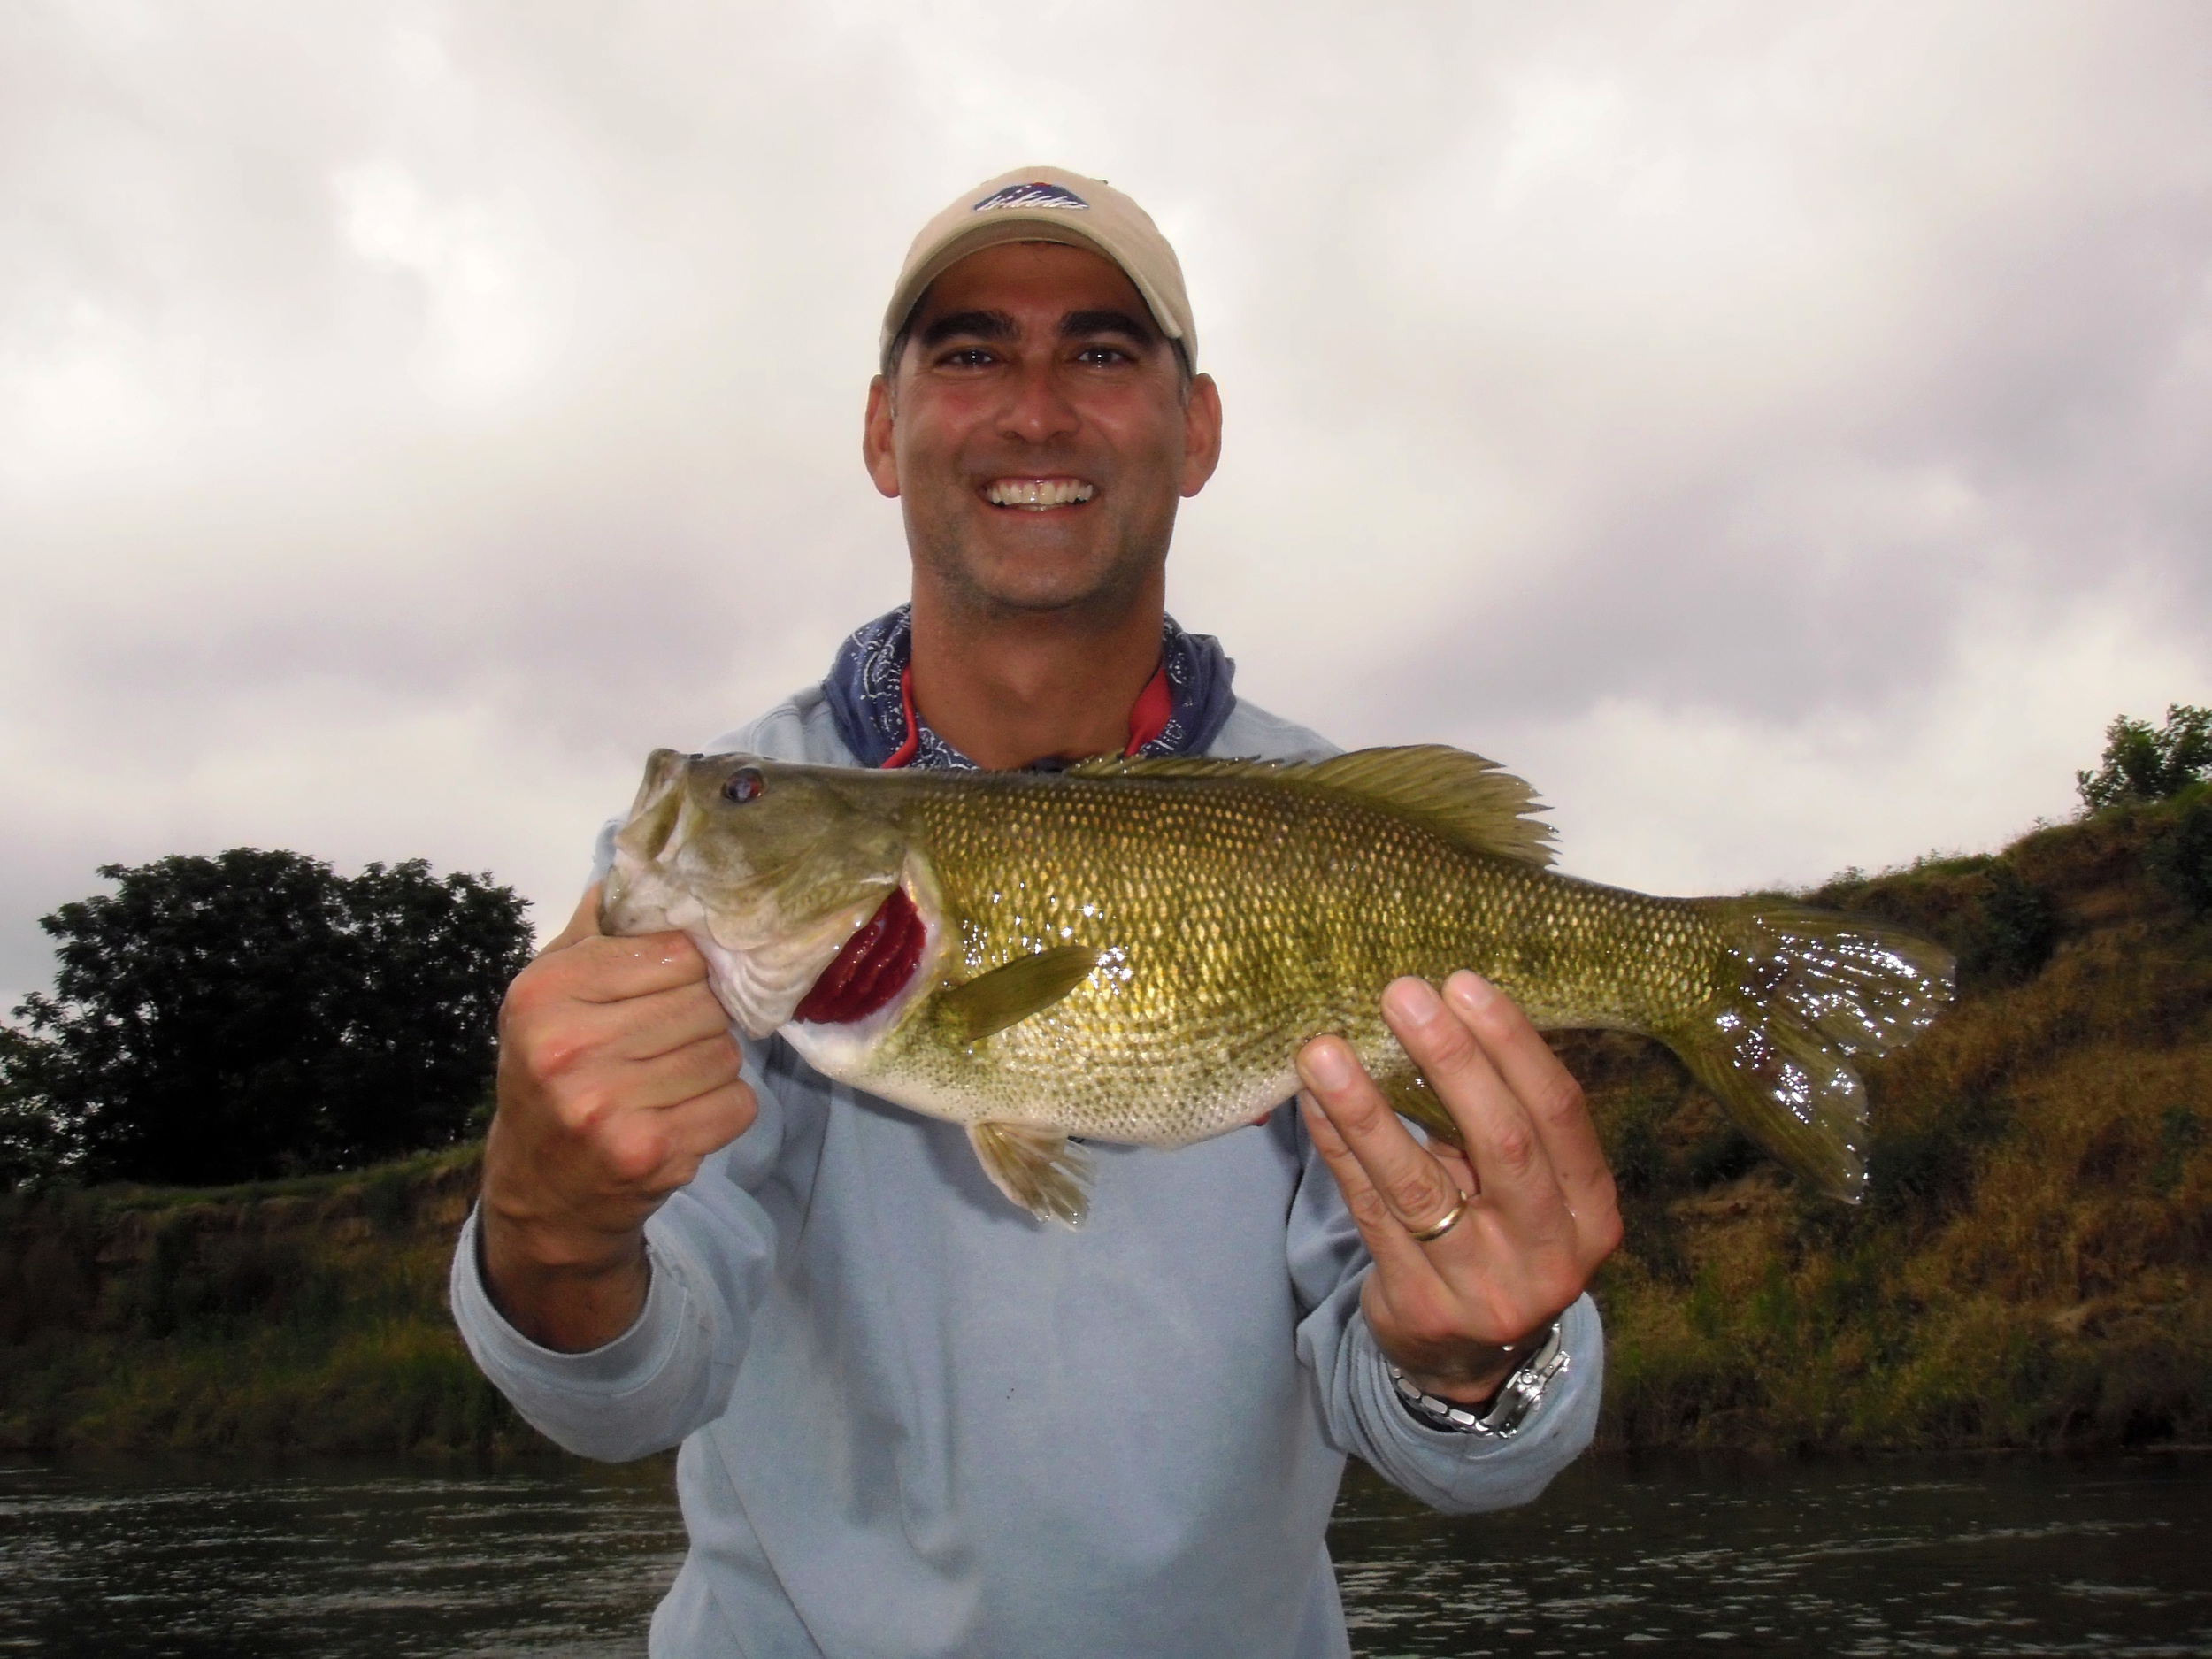 Mike with a Colorado River Guadalupe bass